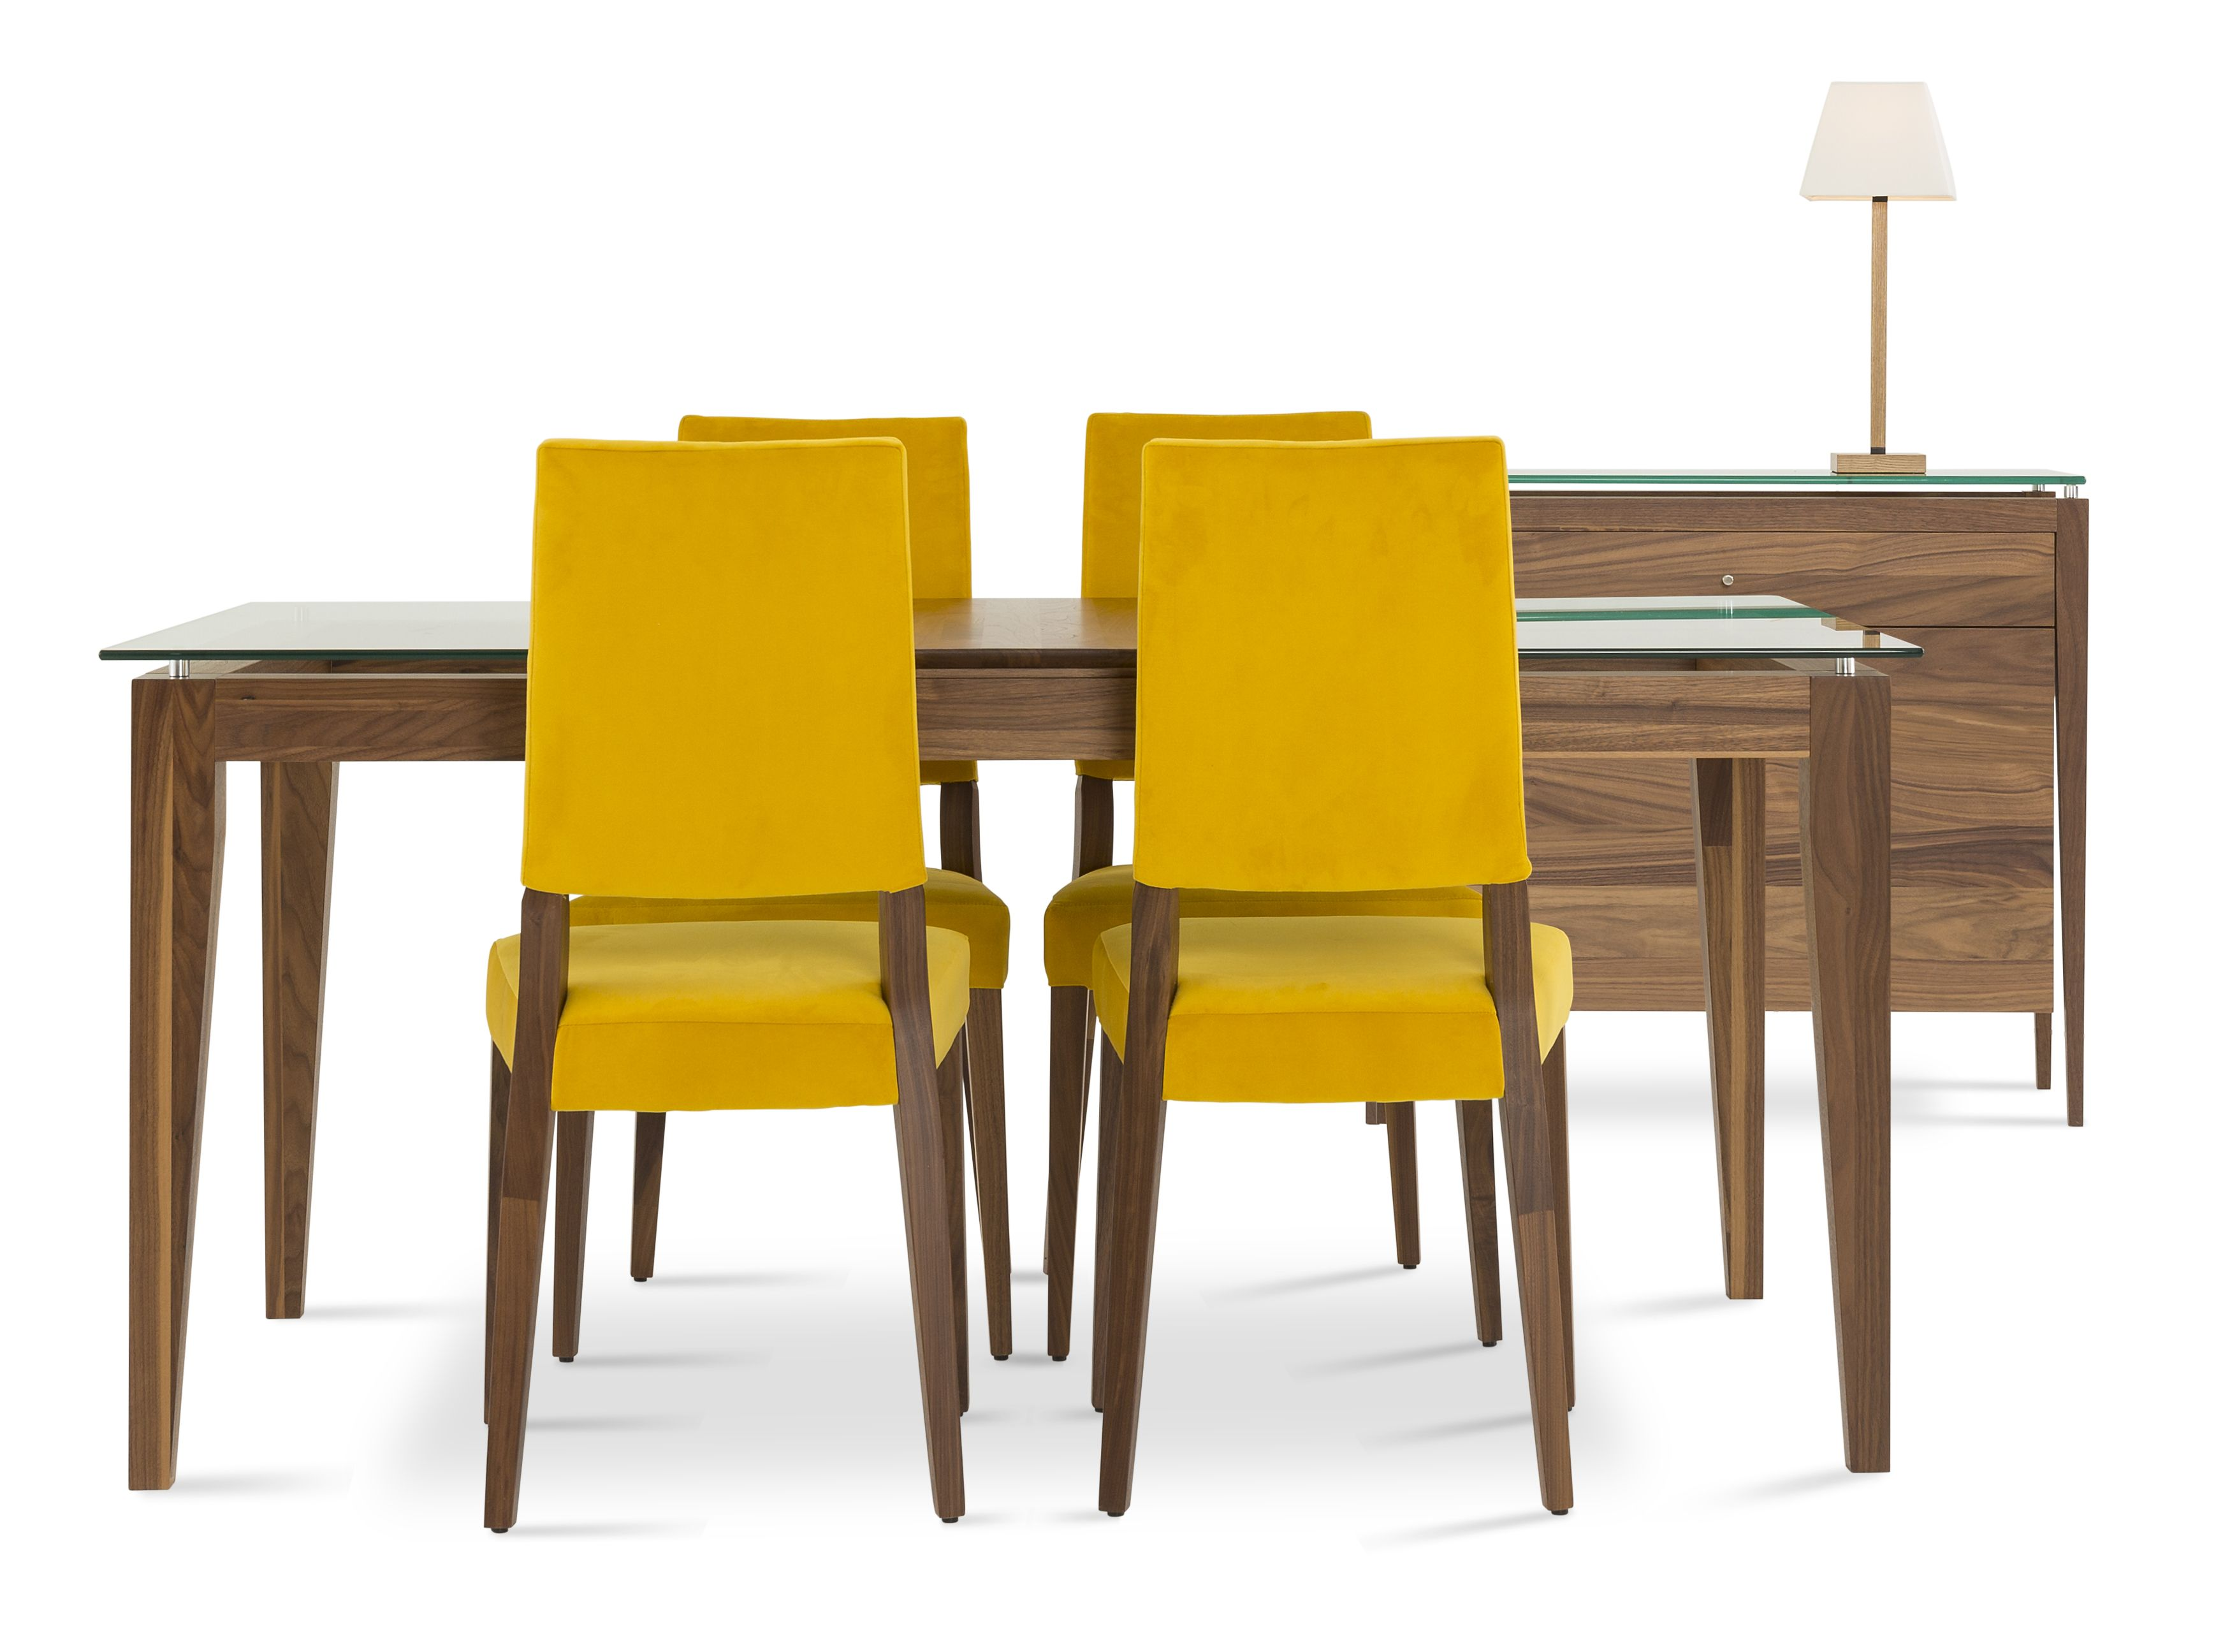 Mobilier Quebecois Disponible En Bois De Merisier Et De Noyer 27 Couleurs Offertes Www Verbois Com Dining Room Furniture Furniture Dinette